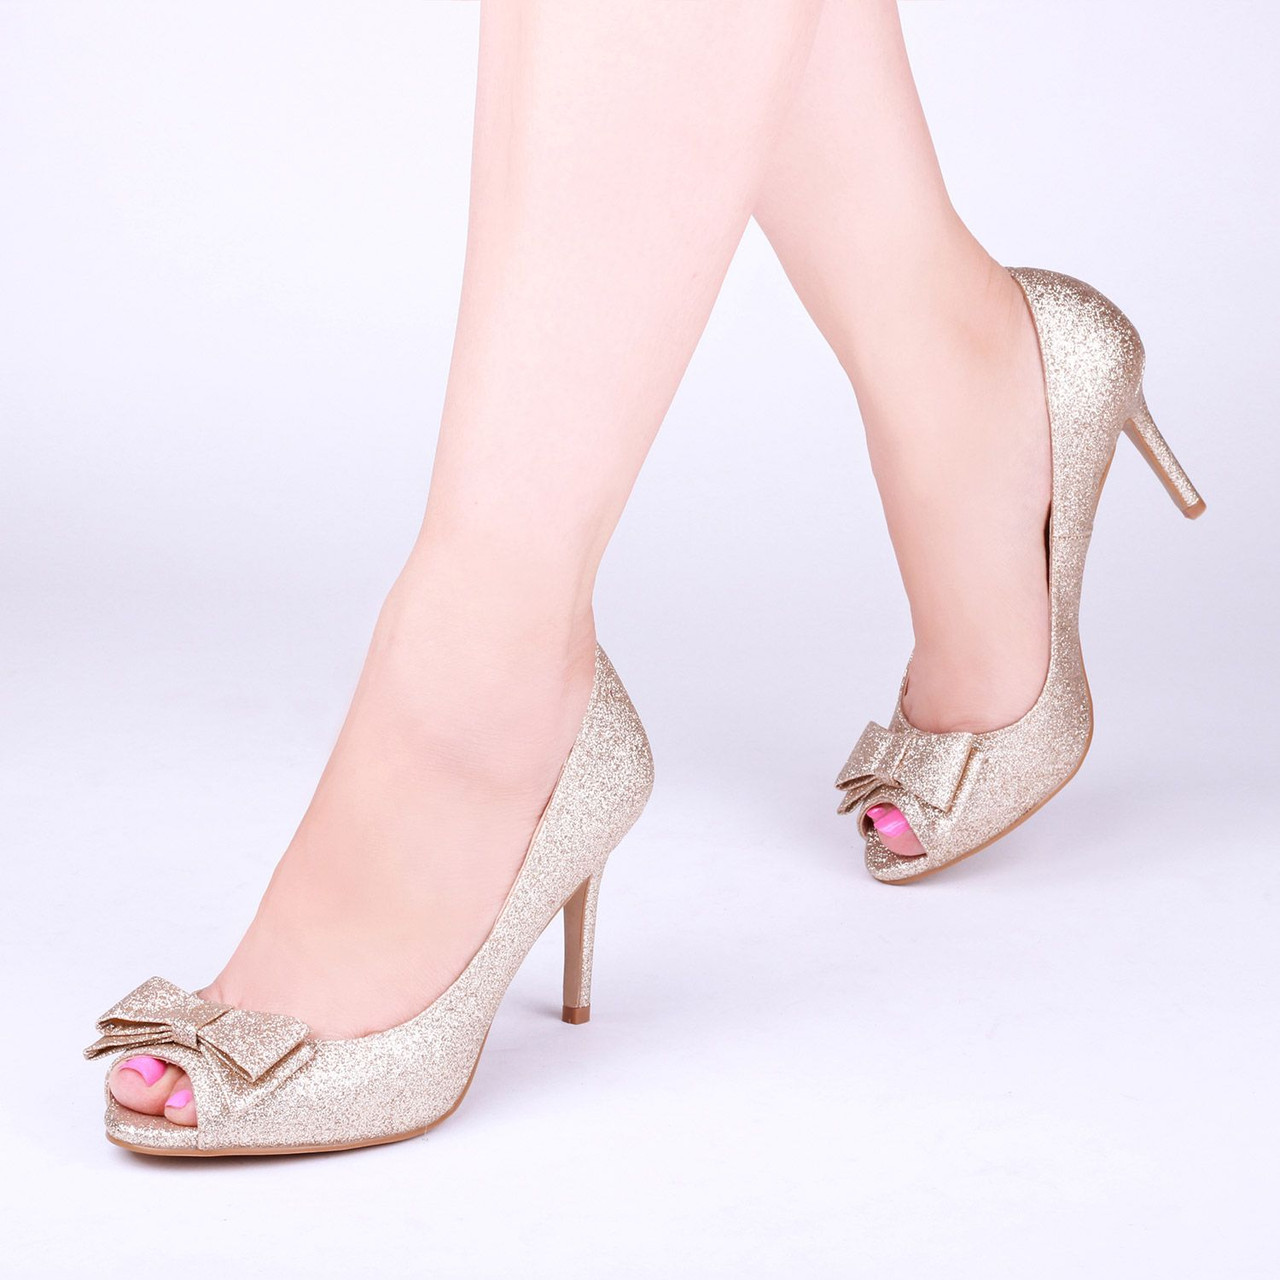 Paradox London Piper Champagne - Pink Collection - Standard Medium Size